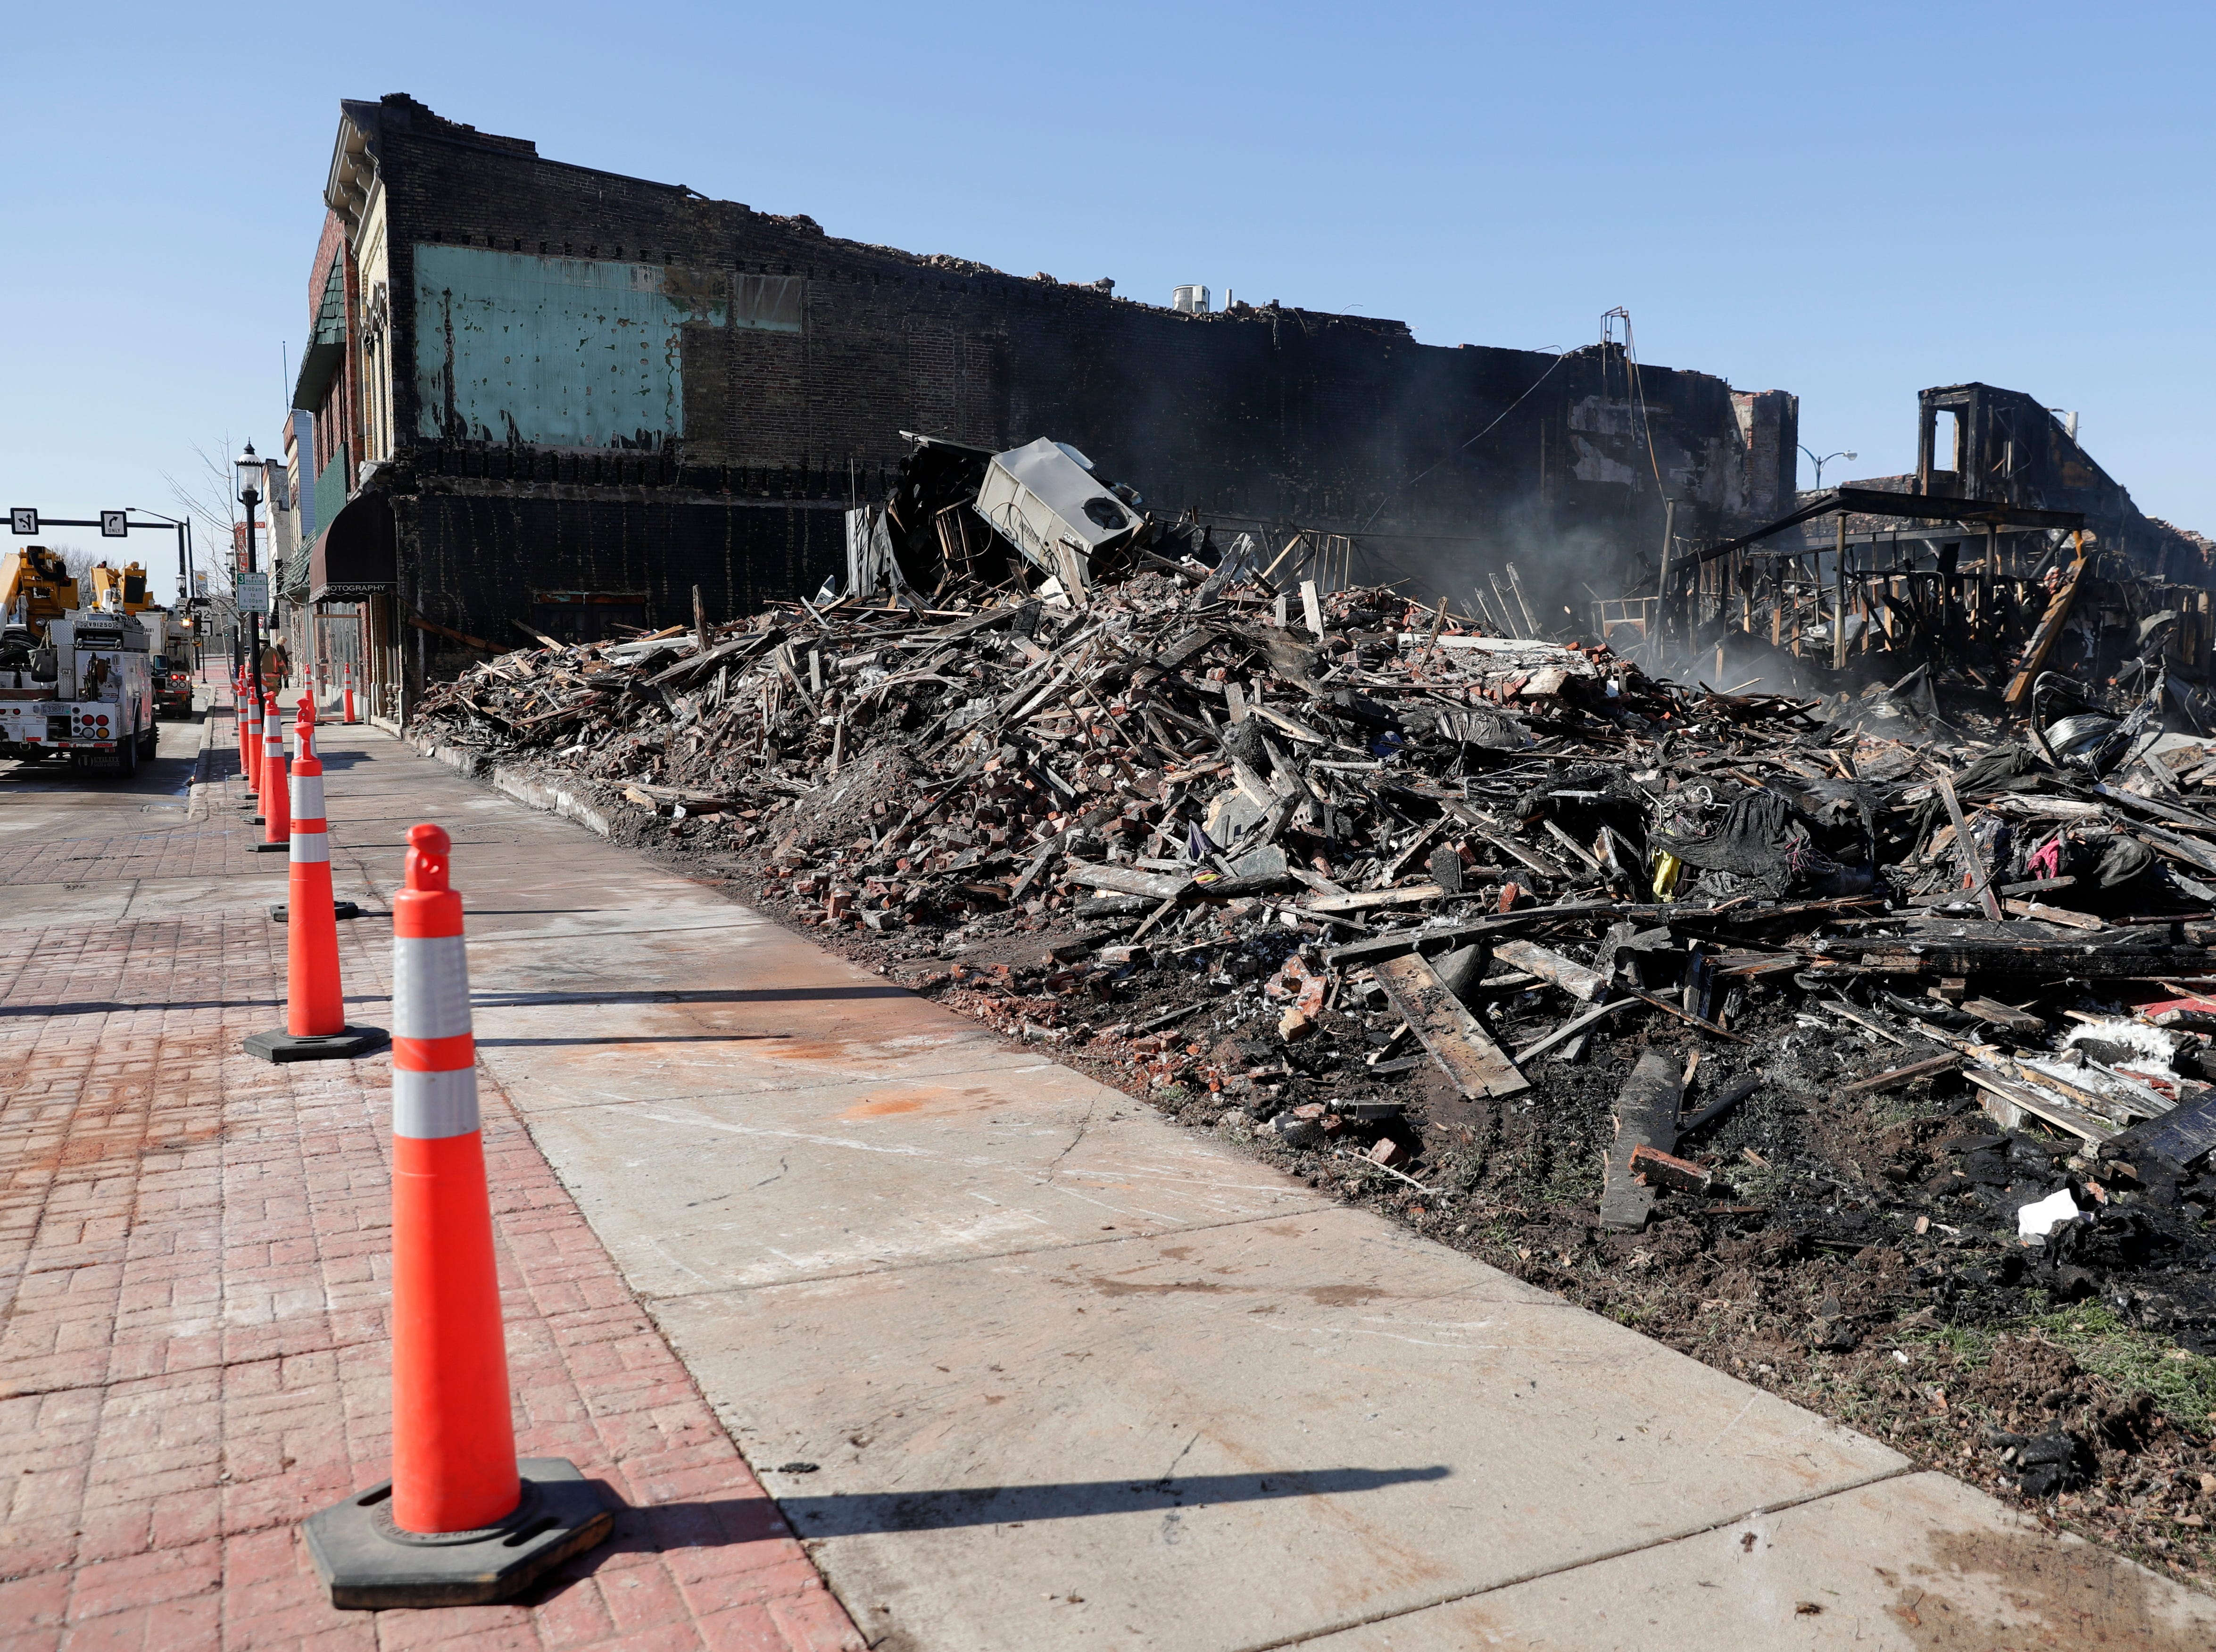 The remains of 100 S. Broadway in De Pere continue to smolder on April 24, 2019 after the building burned down overnight. The building was home to Ogan Restaurant, apartments and a number of other businesses.